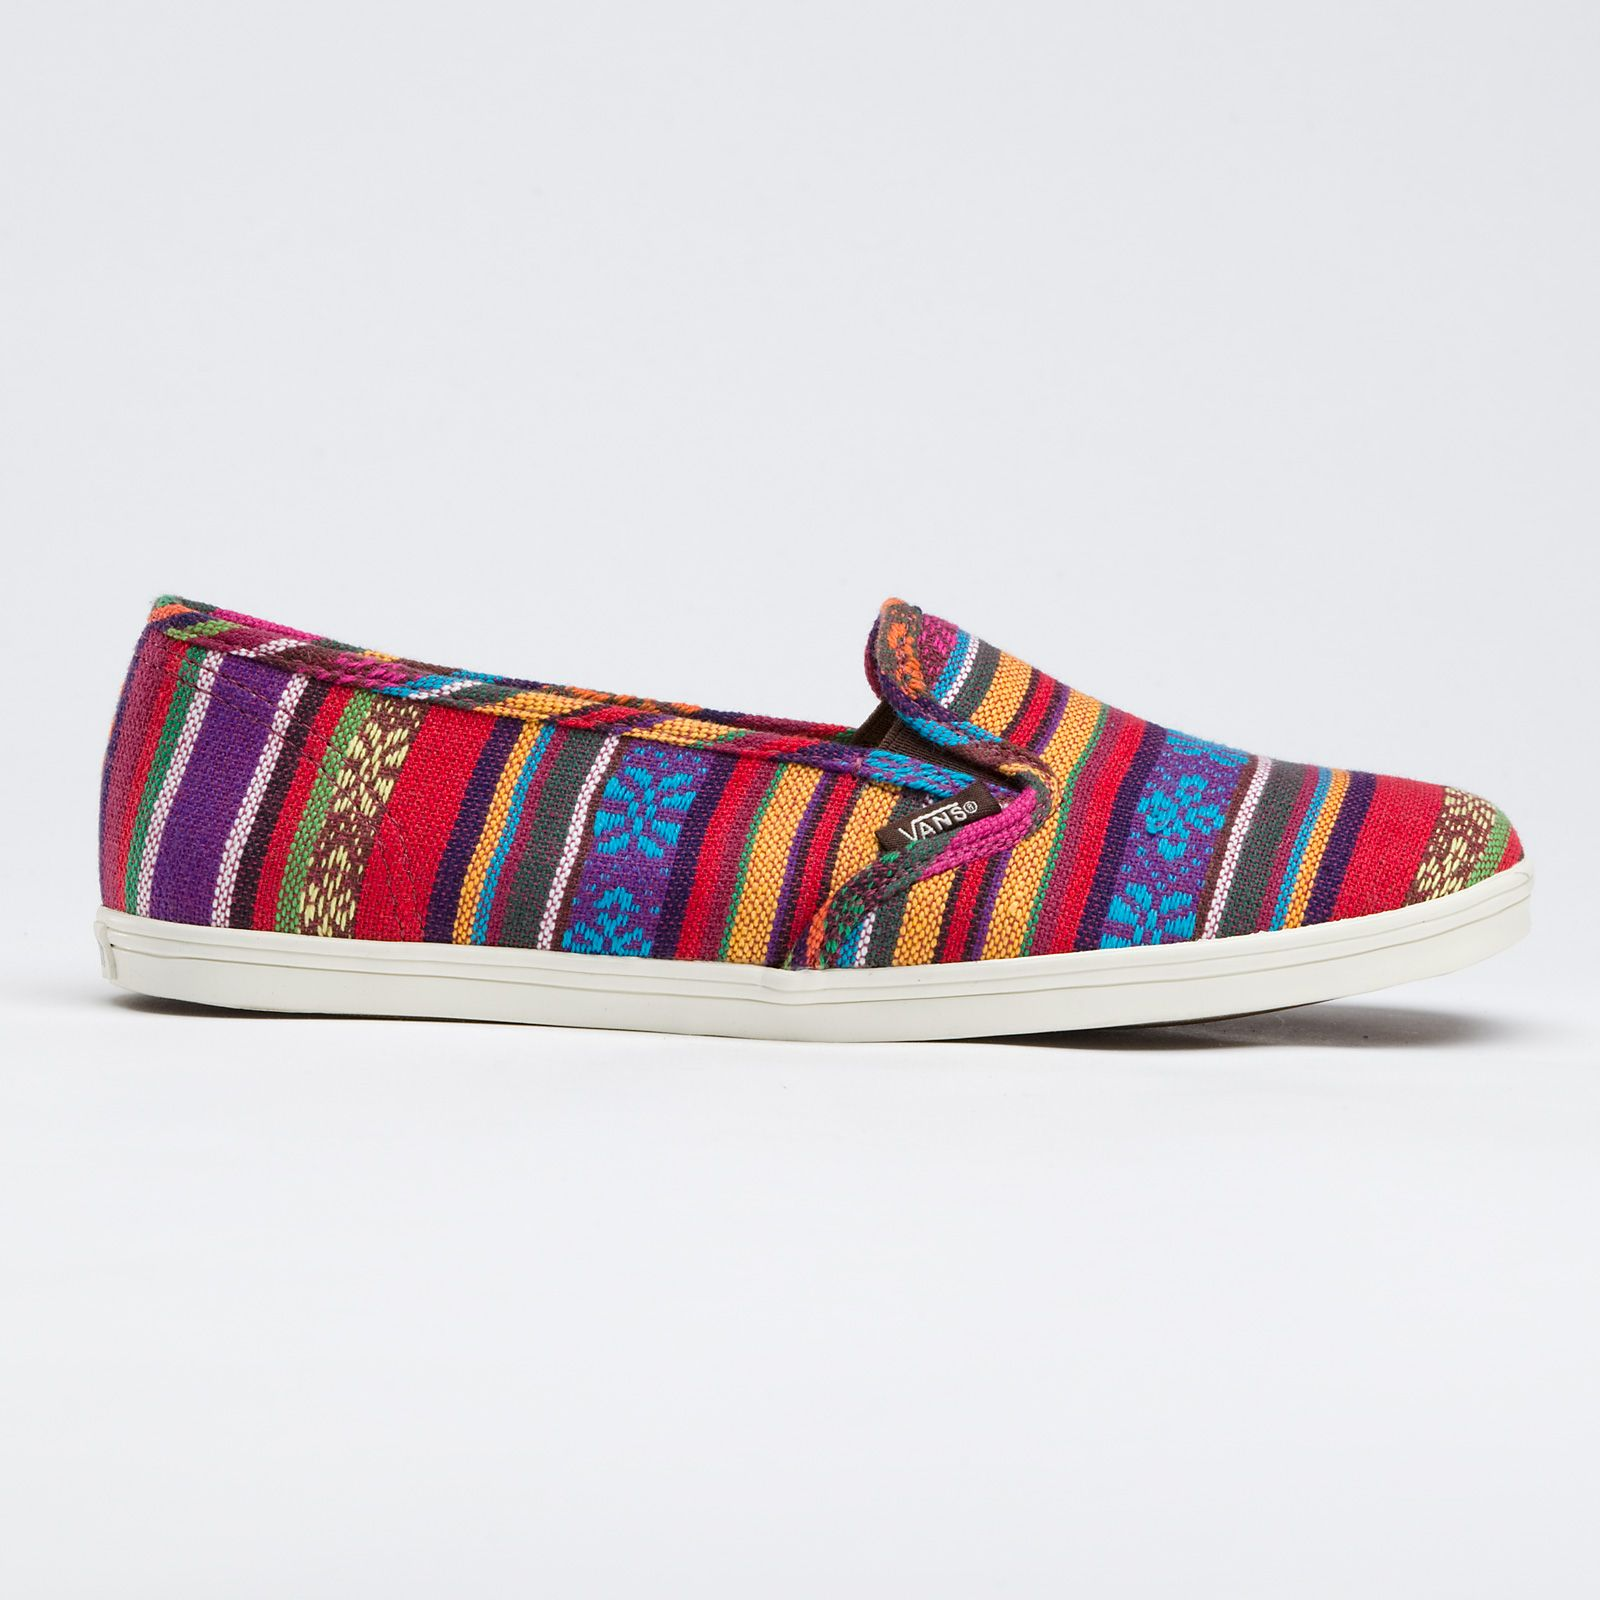 af9939c4414e01 Vans Guate Stripe Slip-On Lo Pro. I don t usually like shoes like this